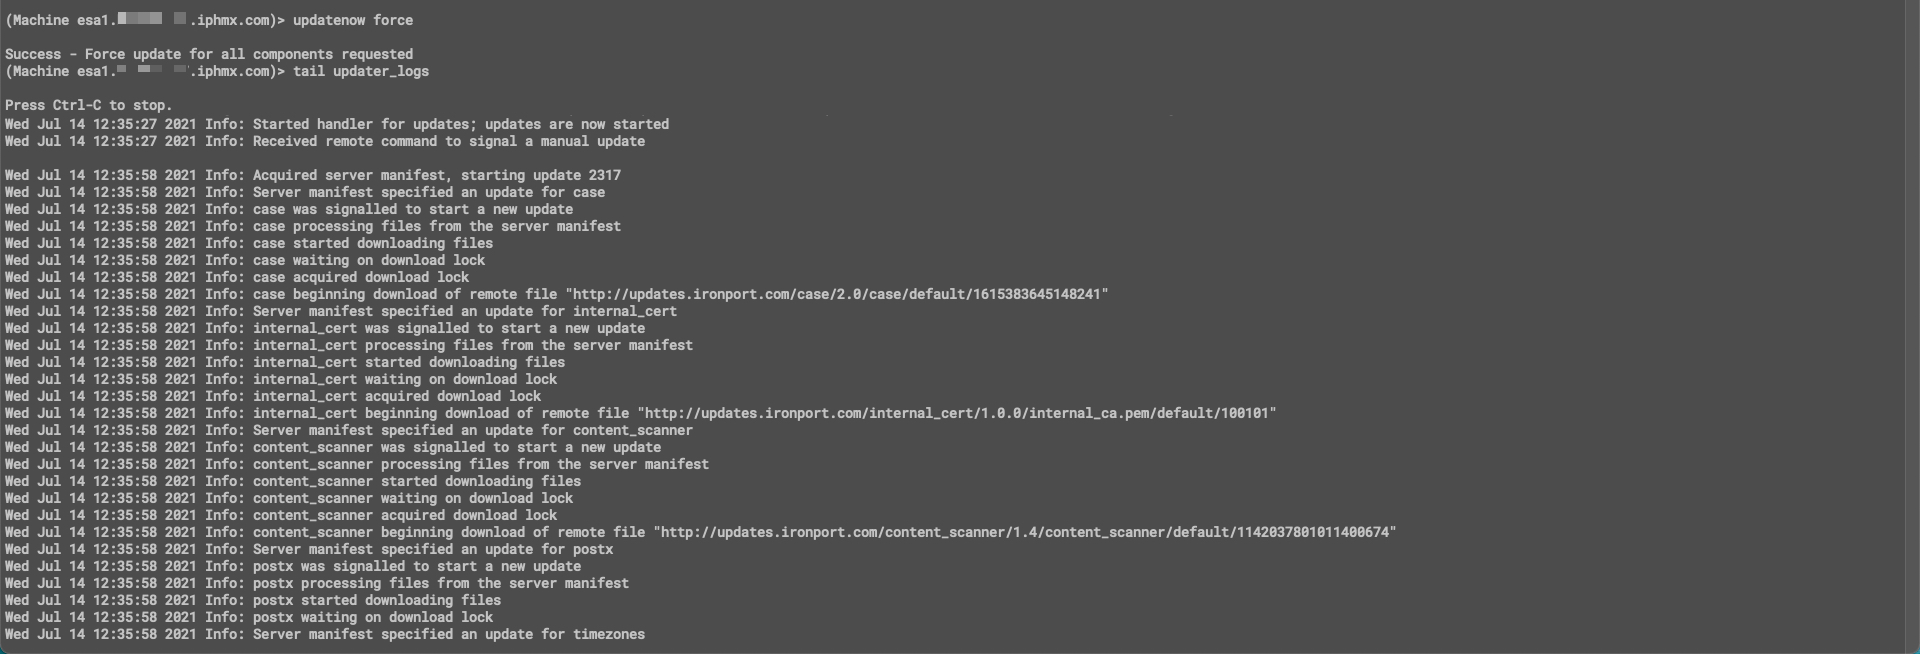 CLI example using 'updatenow force'